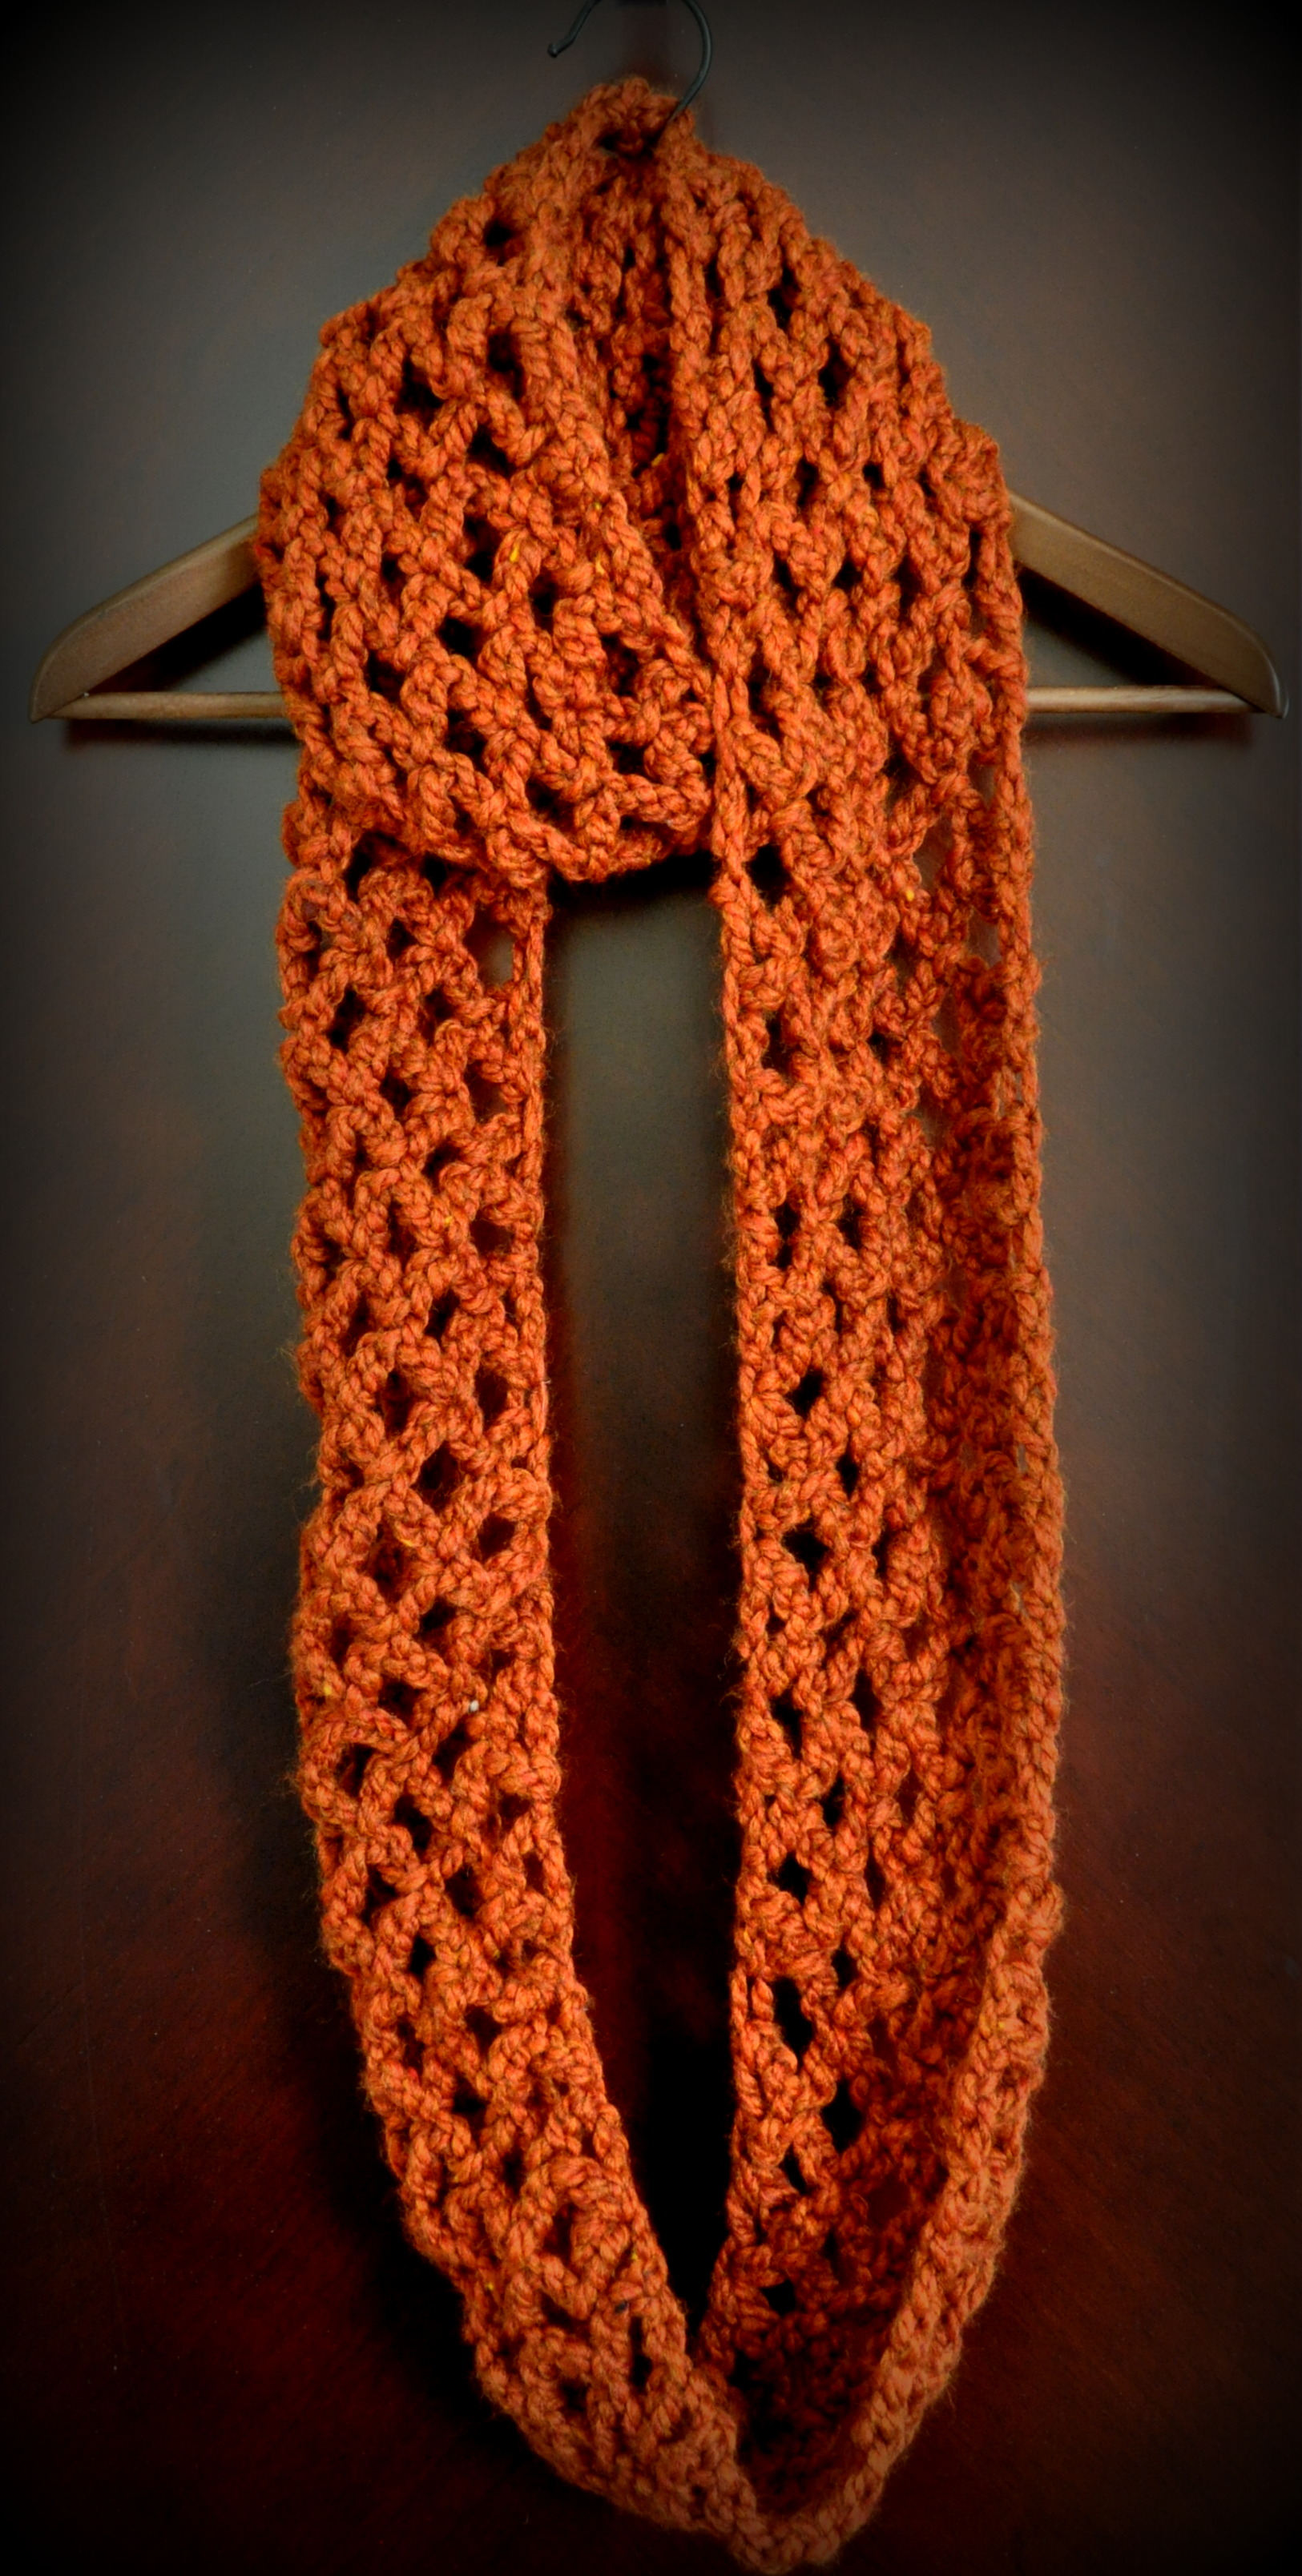 Crochet Pattern For Scarf Easy : Free Pattern: Diamond Lattice Chain Crochet Infinity Scarf ...